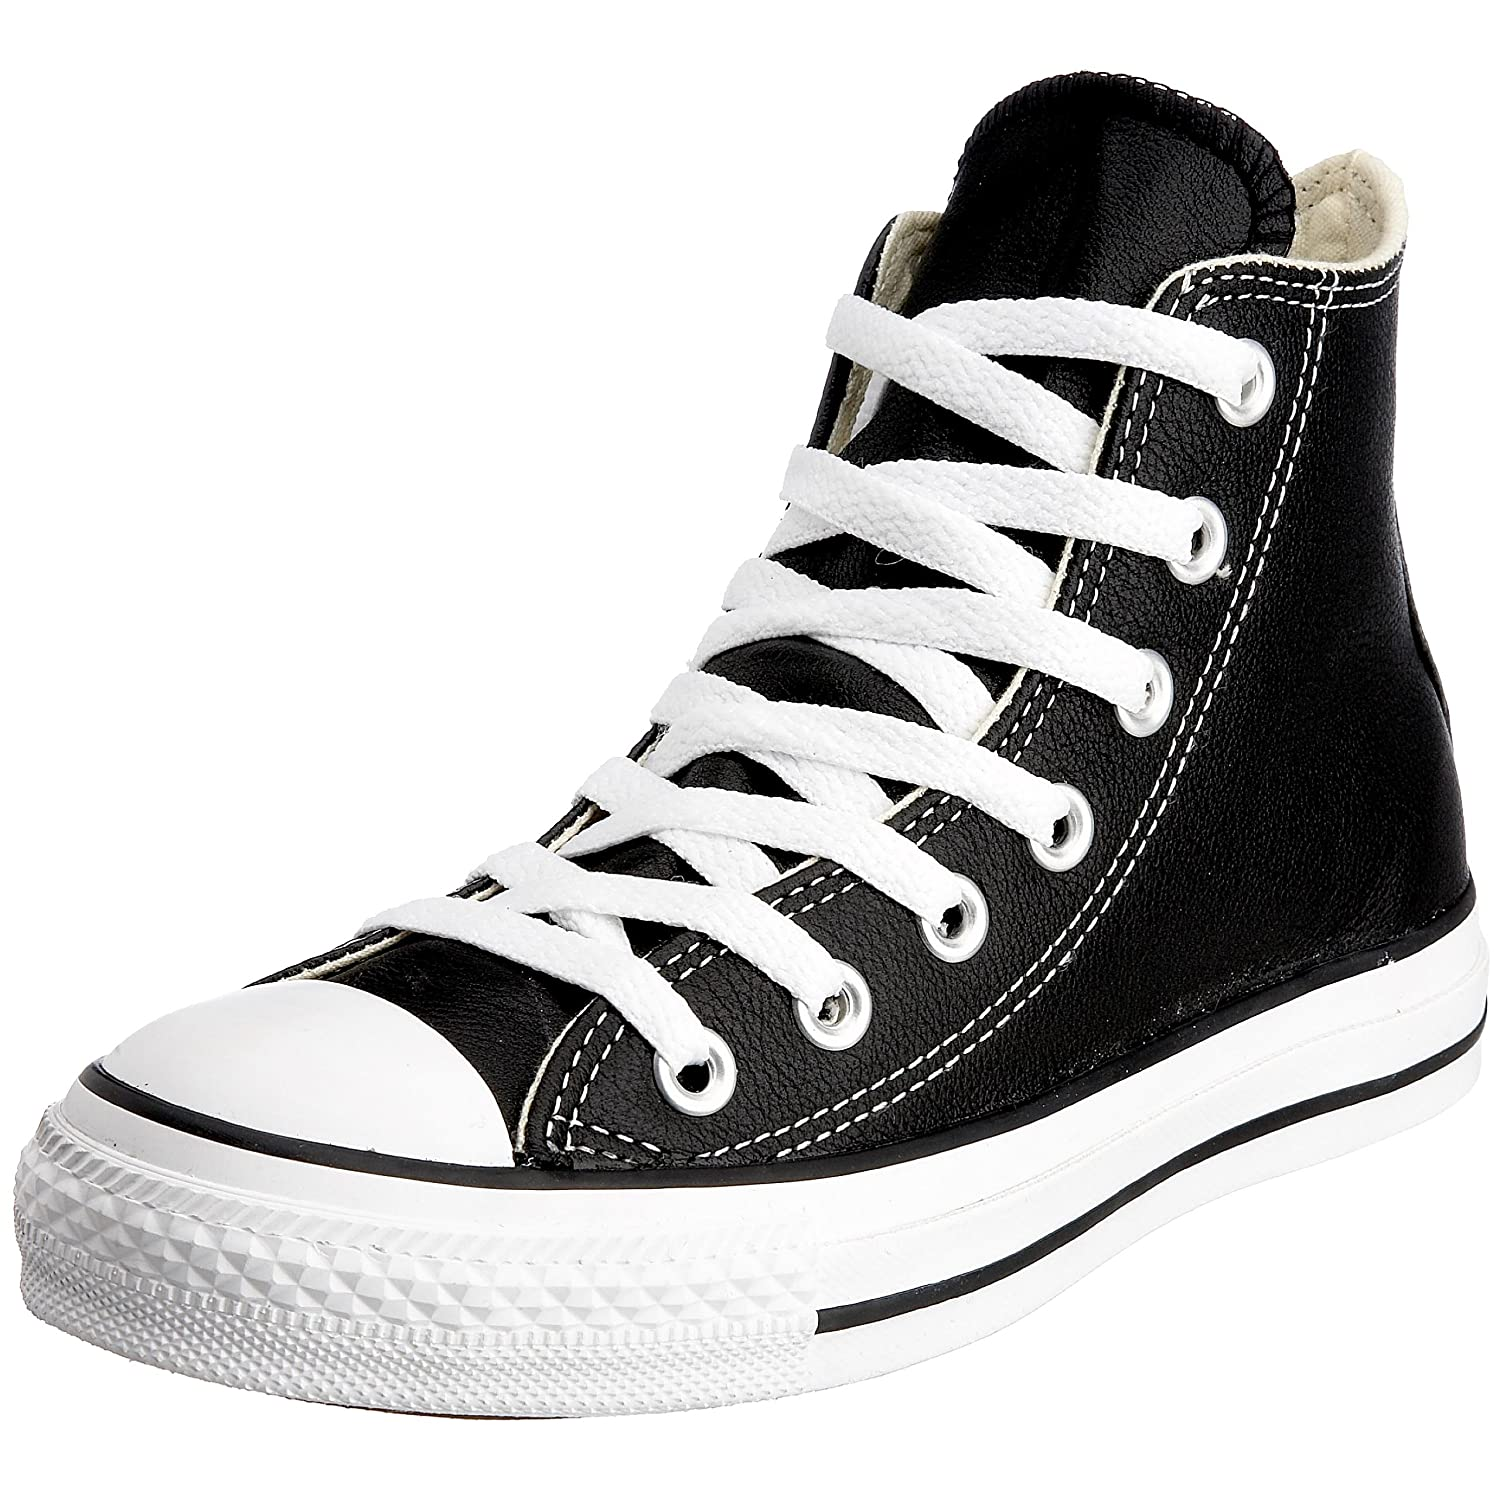 | Converse Unisex Chuck Taylor All Star Shoes | Fashion Sneakers